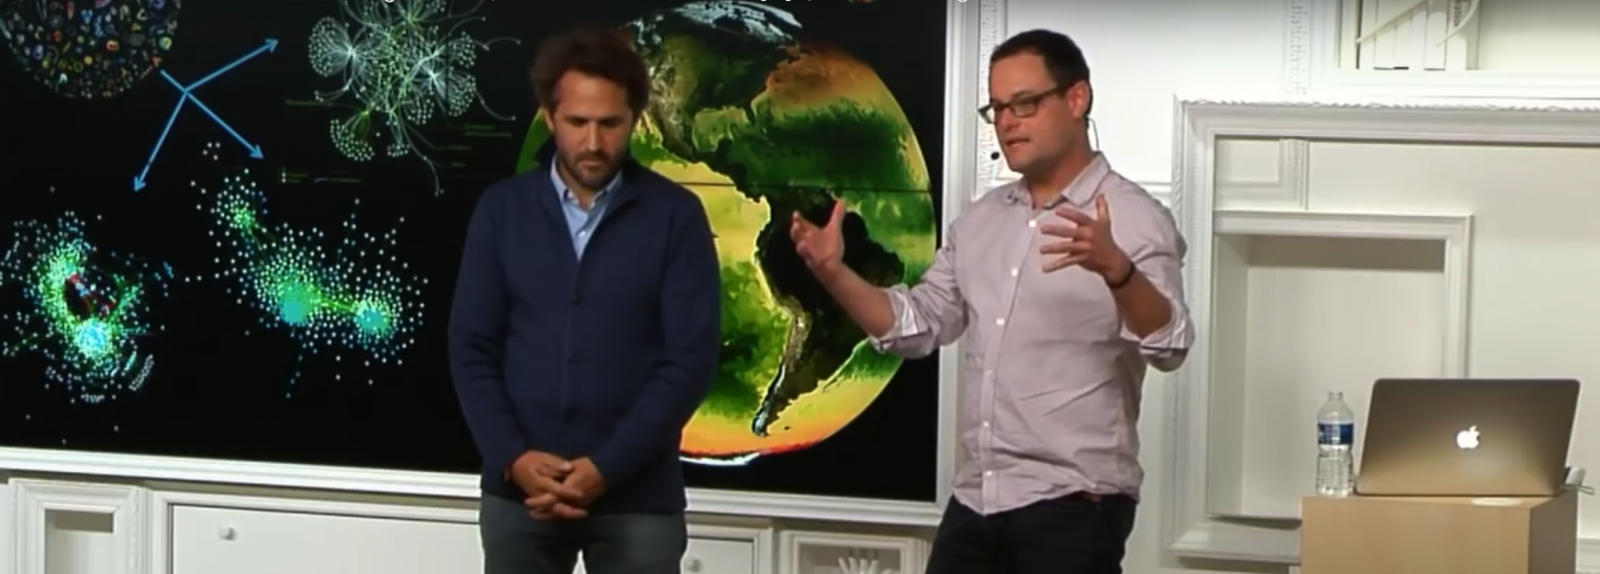 R. Troublé and C. de Vargas giving a talk at Google about Tara Oceans